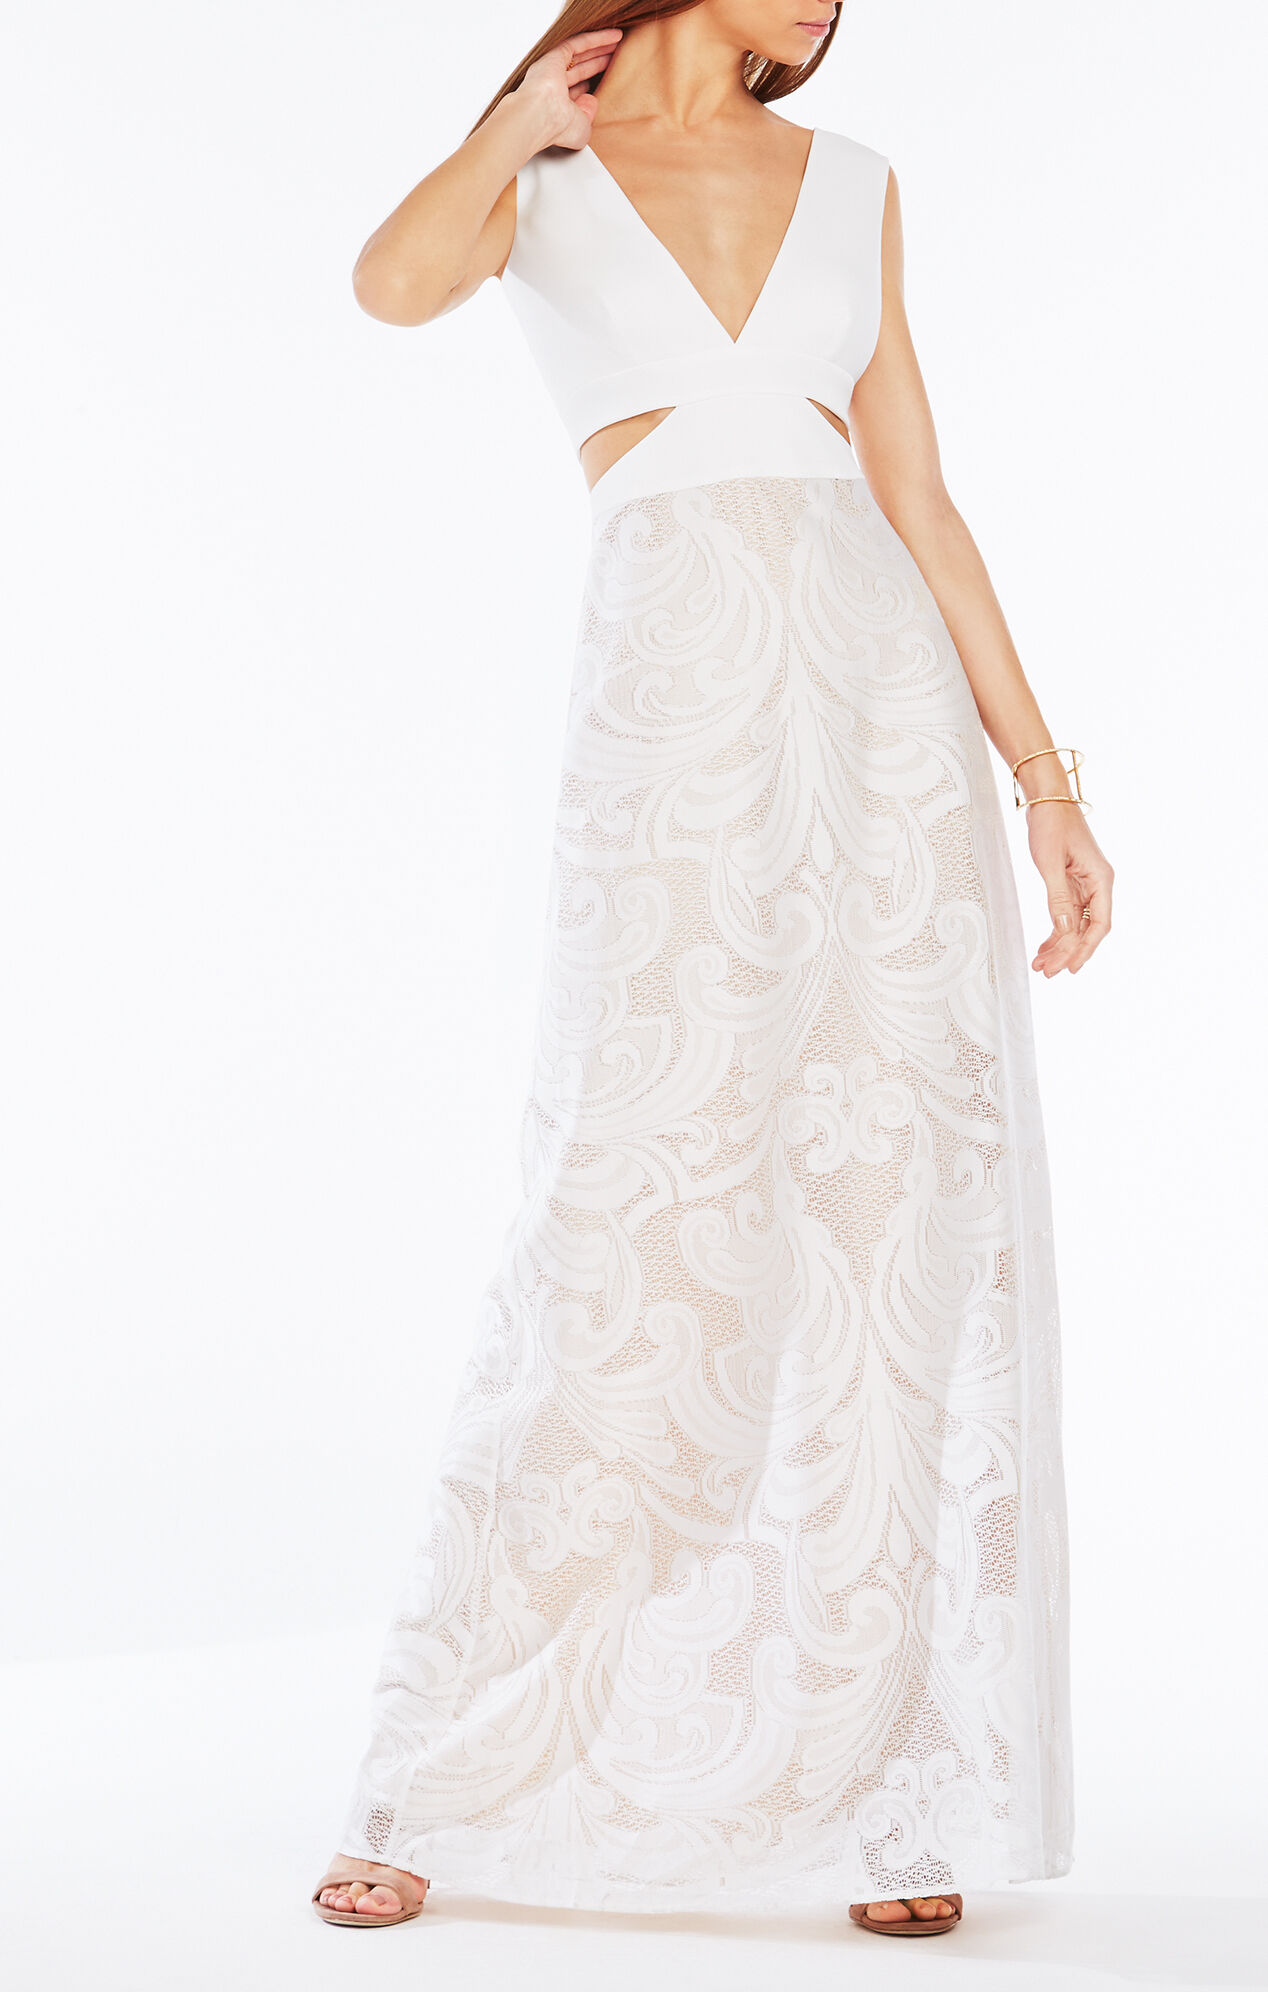 Marilyne Swirl Lace Cutout Gown